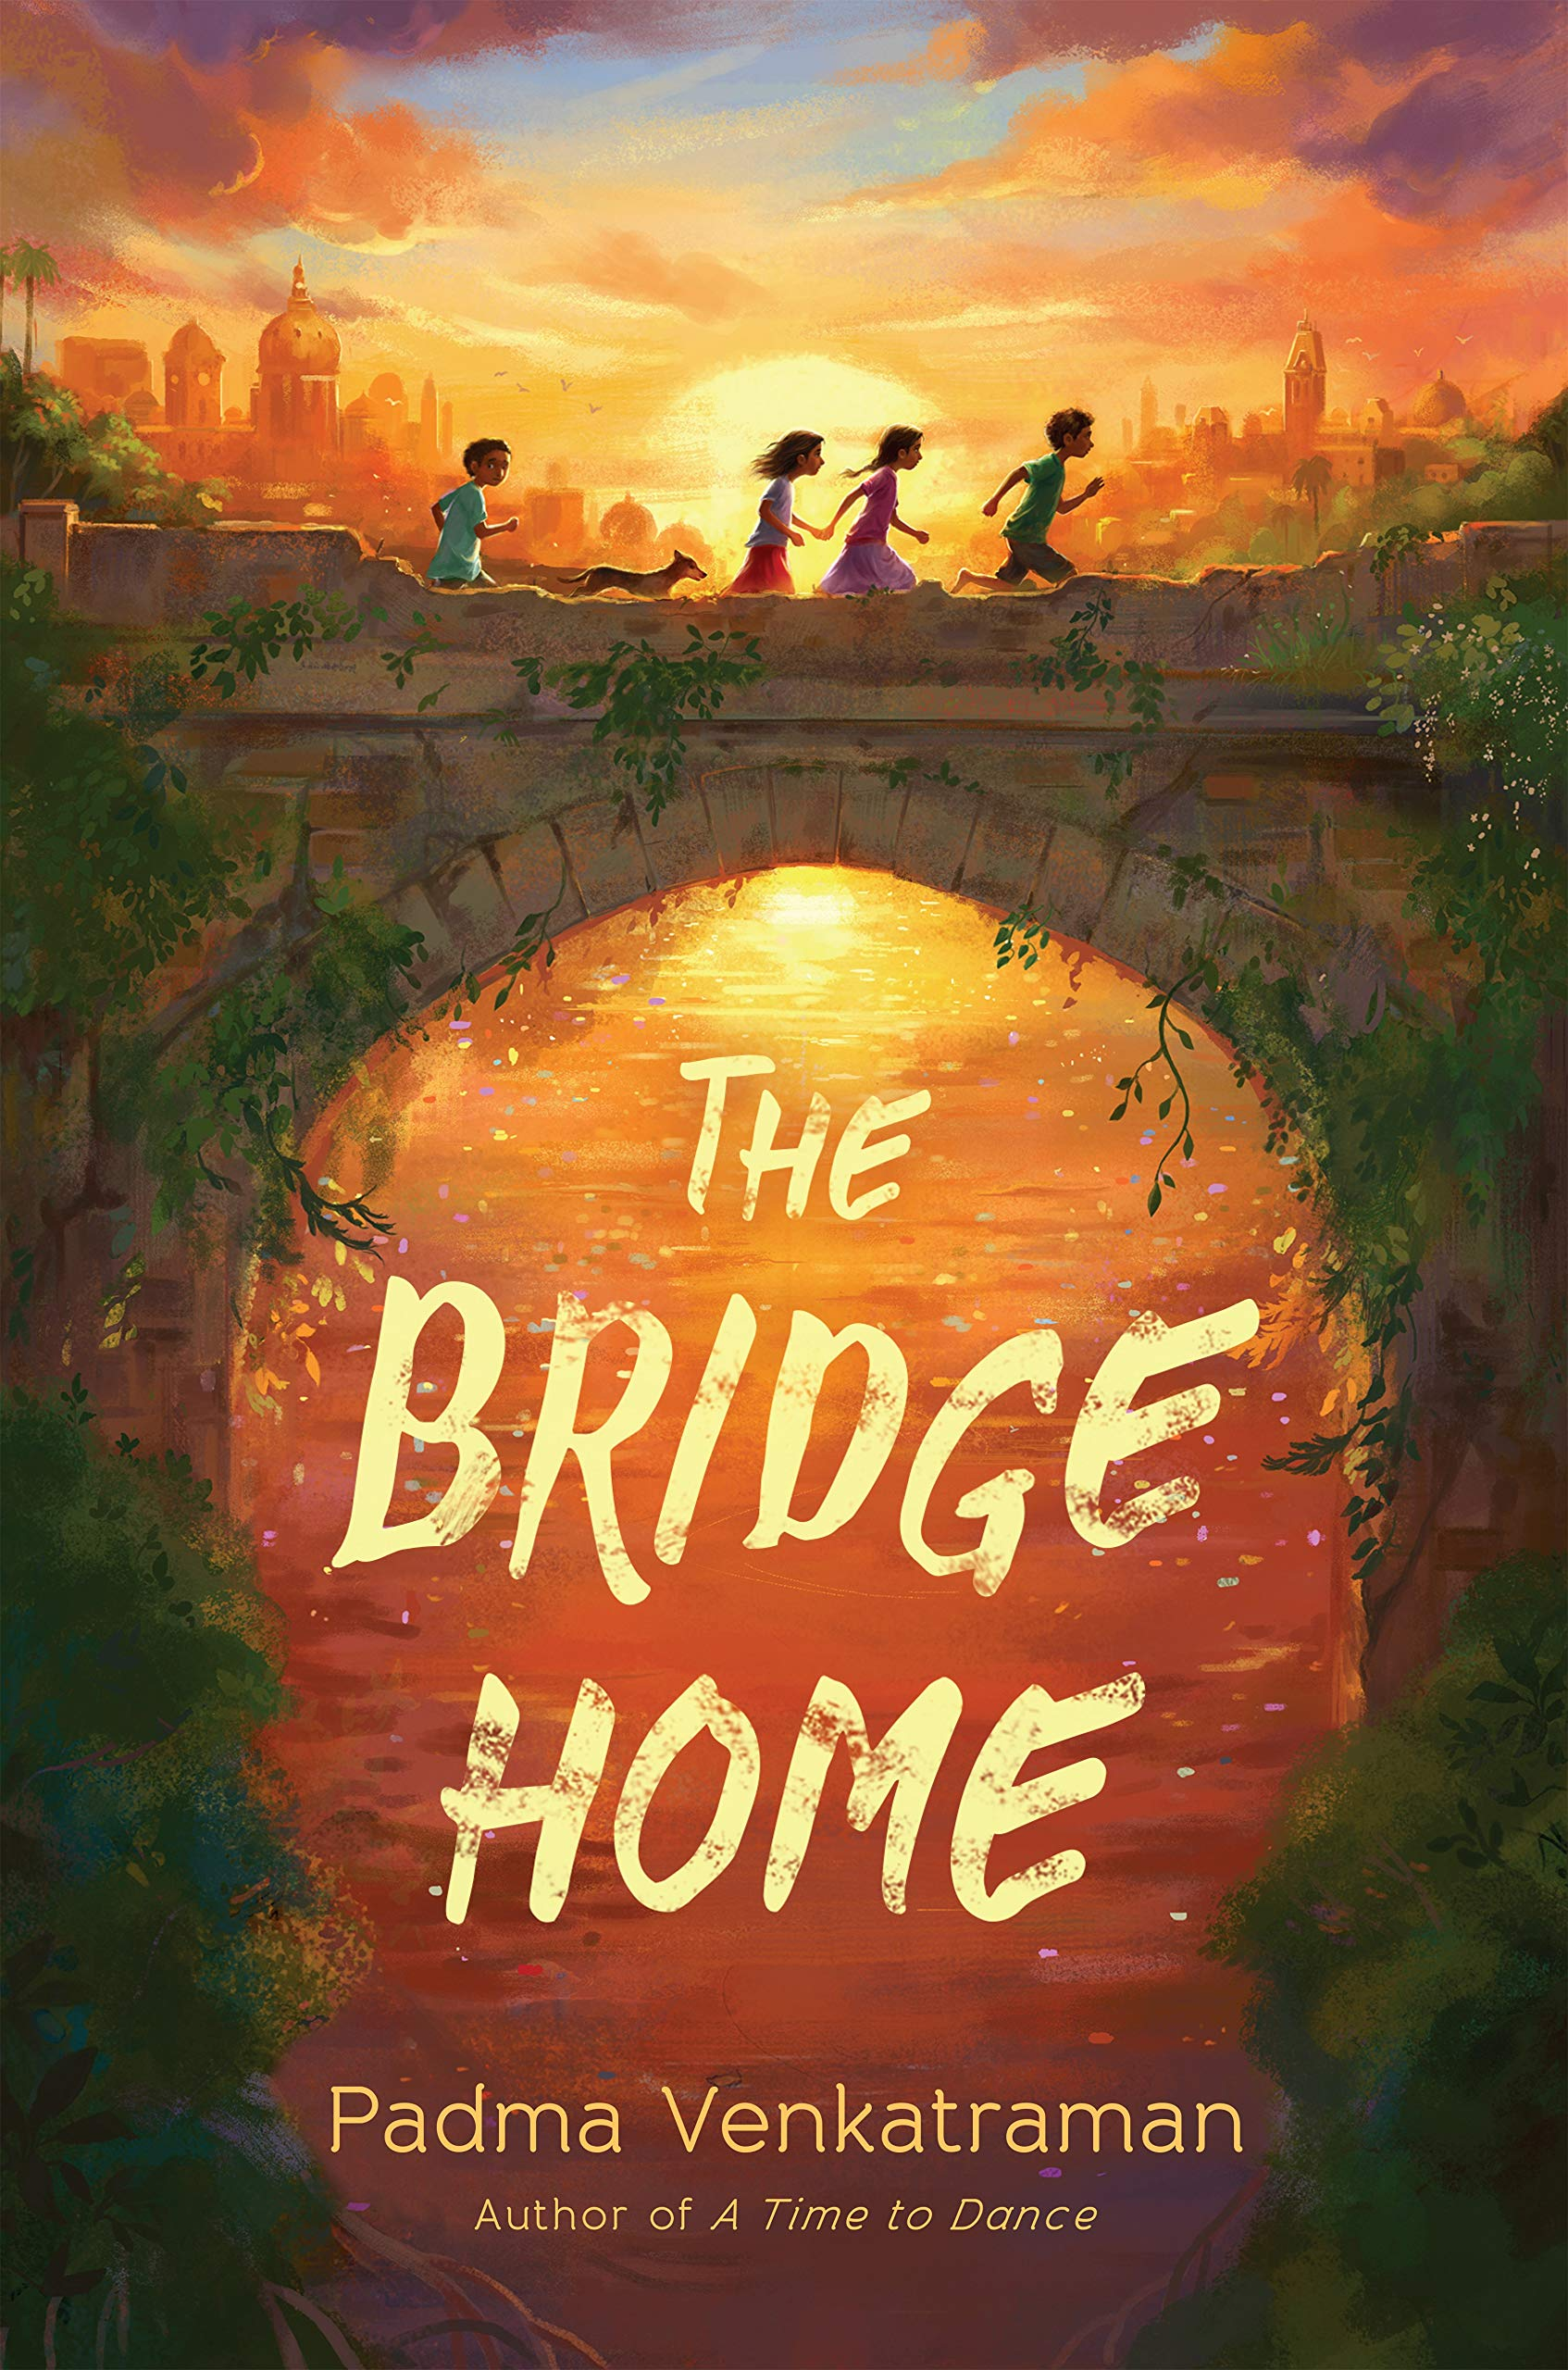 Amazon Fr The Bridge Home Padma Venkatraman Livres